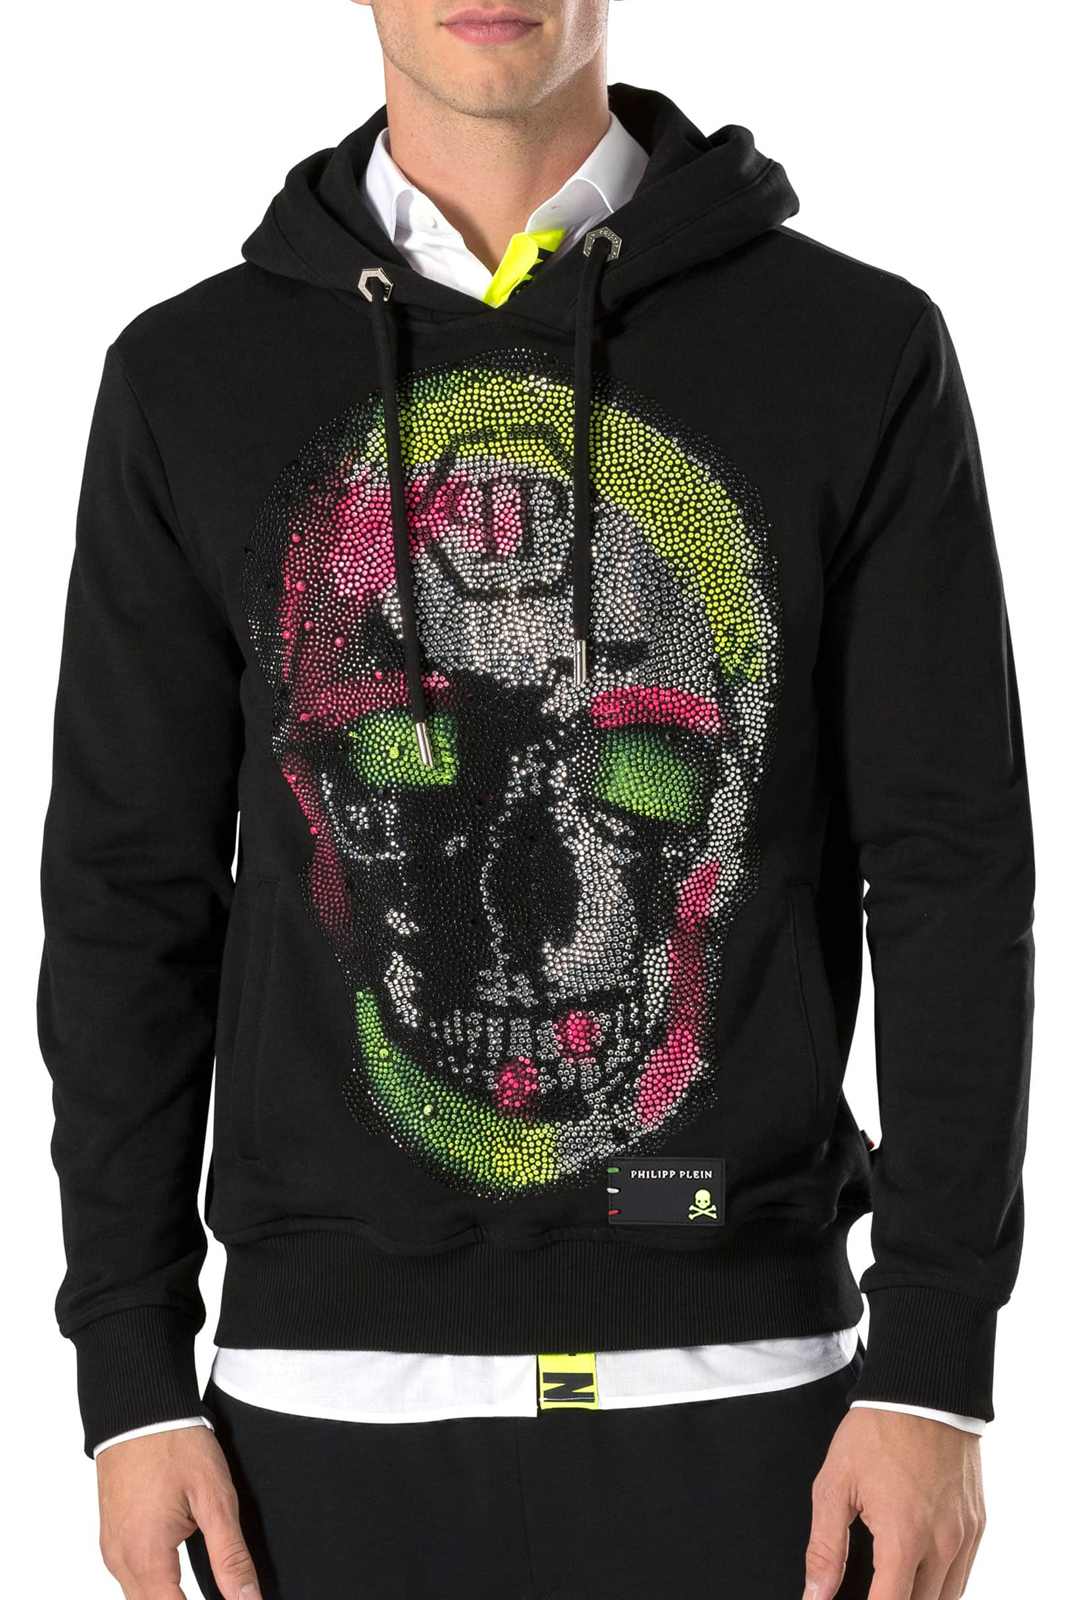 Sweatshirts  Philipp plein S18C MJB0311 JUST A DREAM 02 BLACK